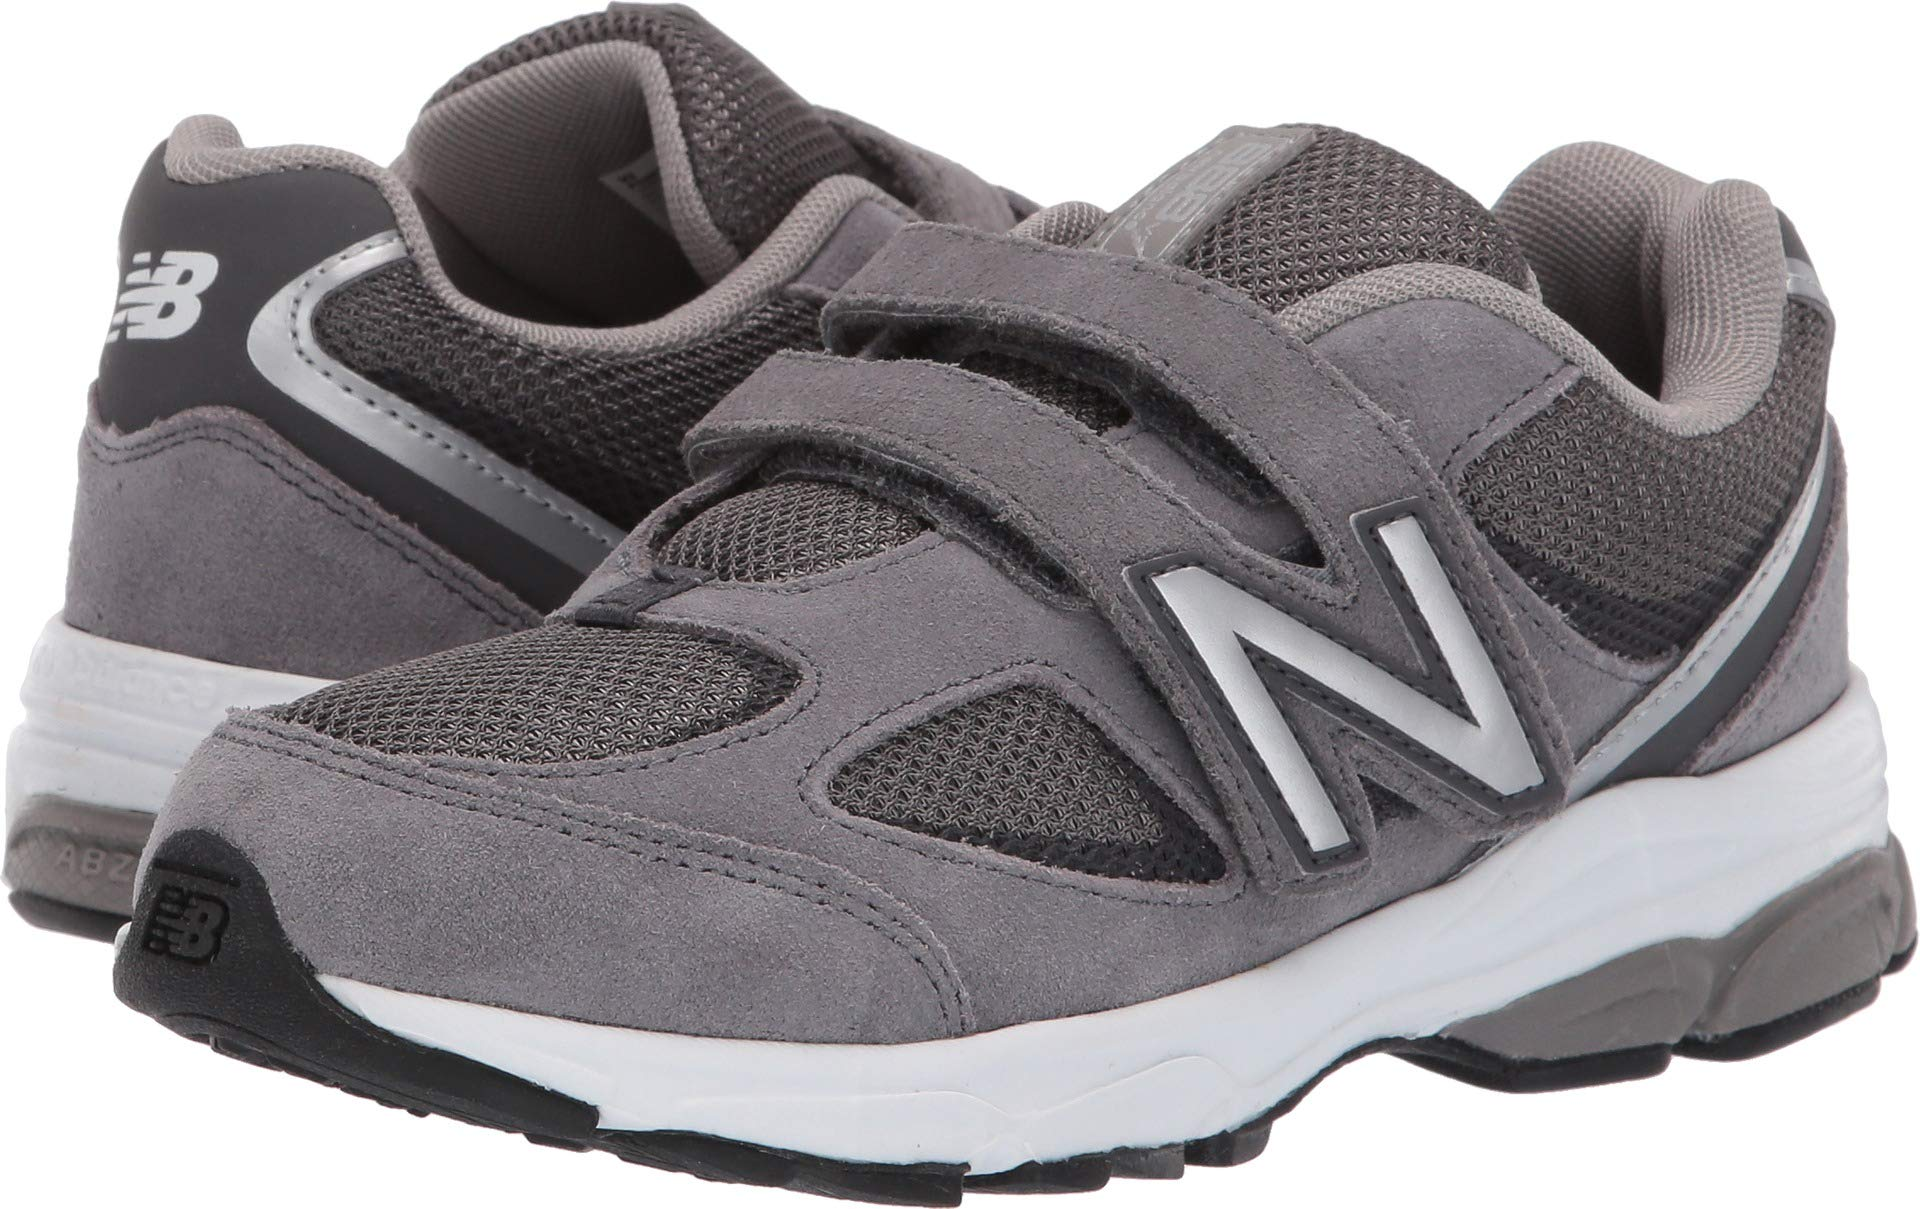 New Balance Boys' 888v2 Hook and Loop Running Shoe, Dark Grey, 1 M US Little Kid